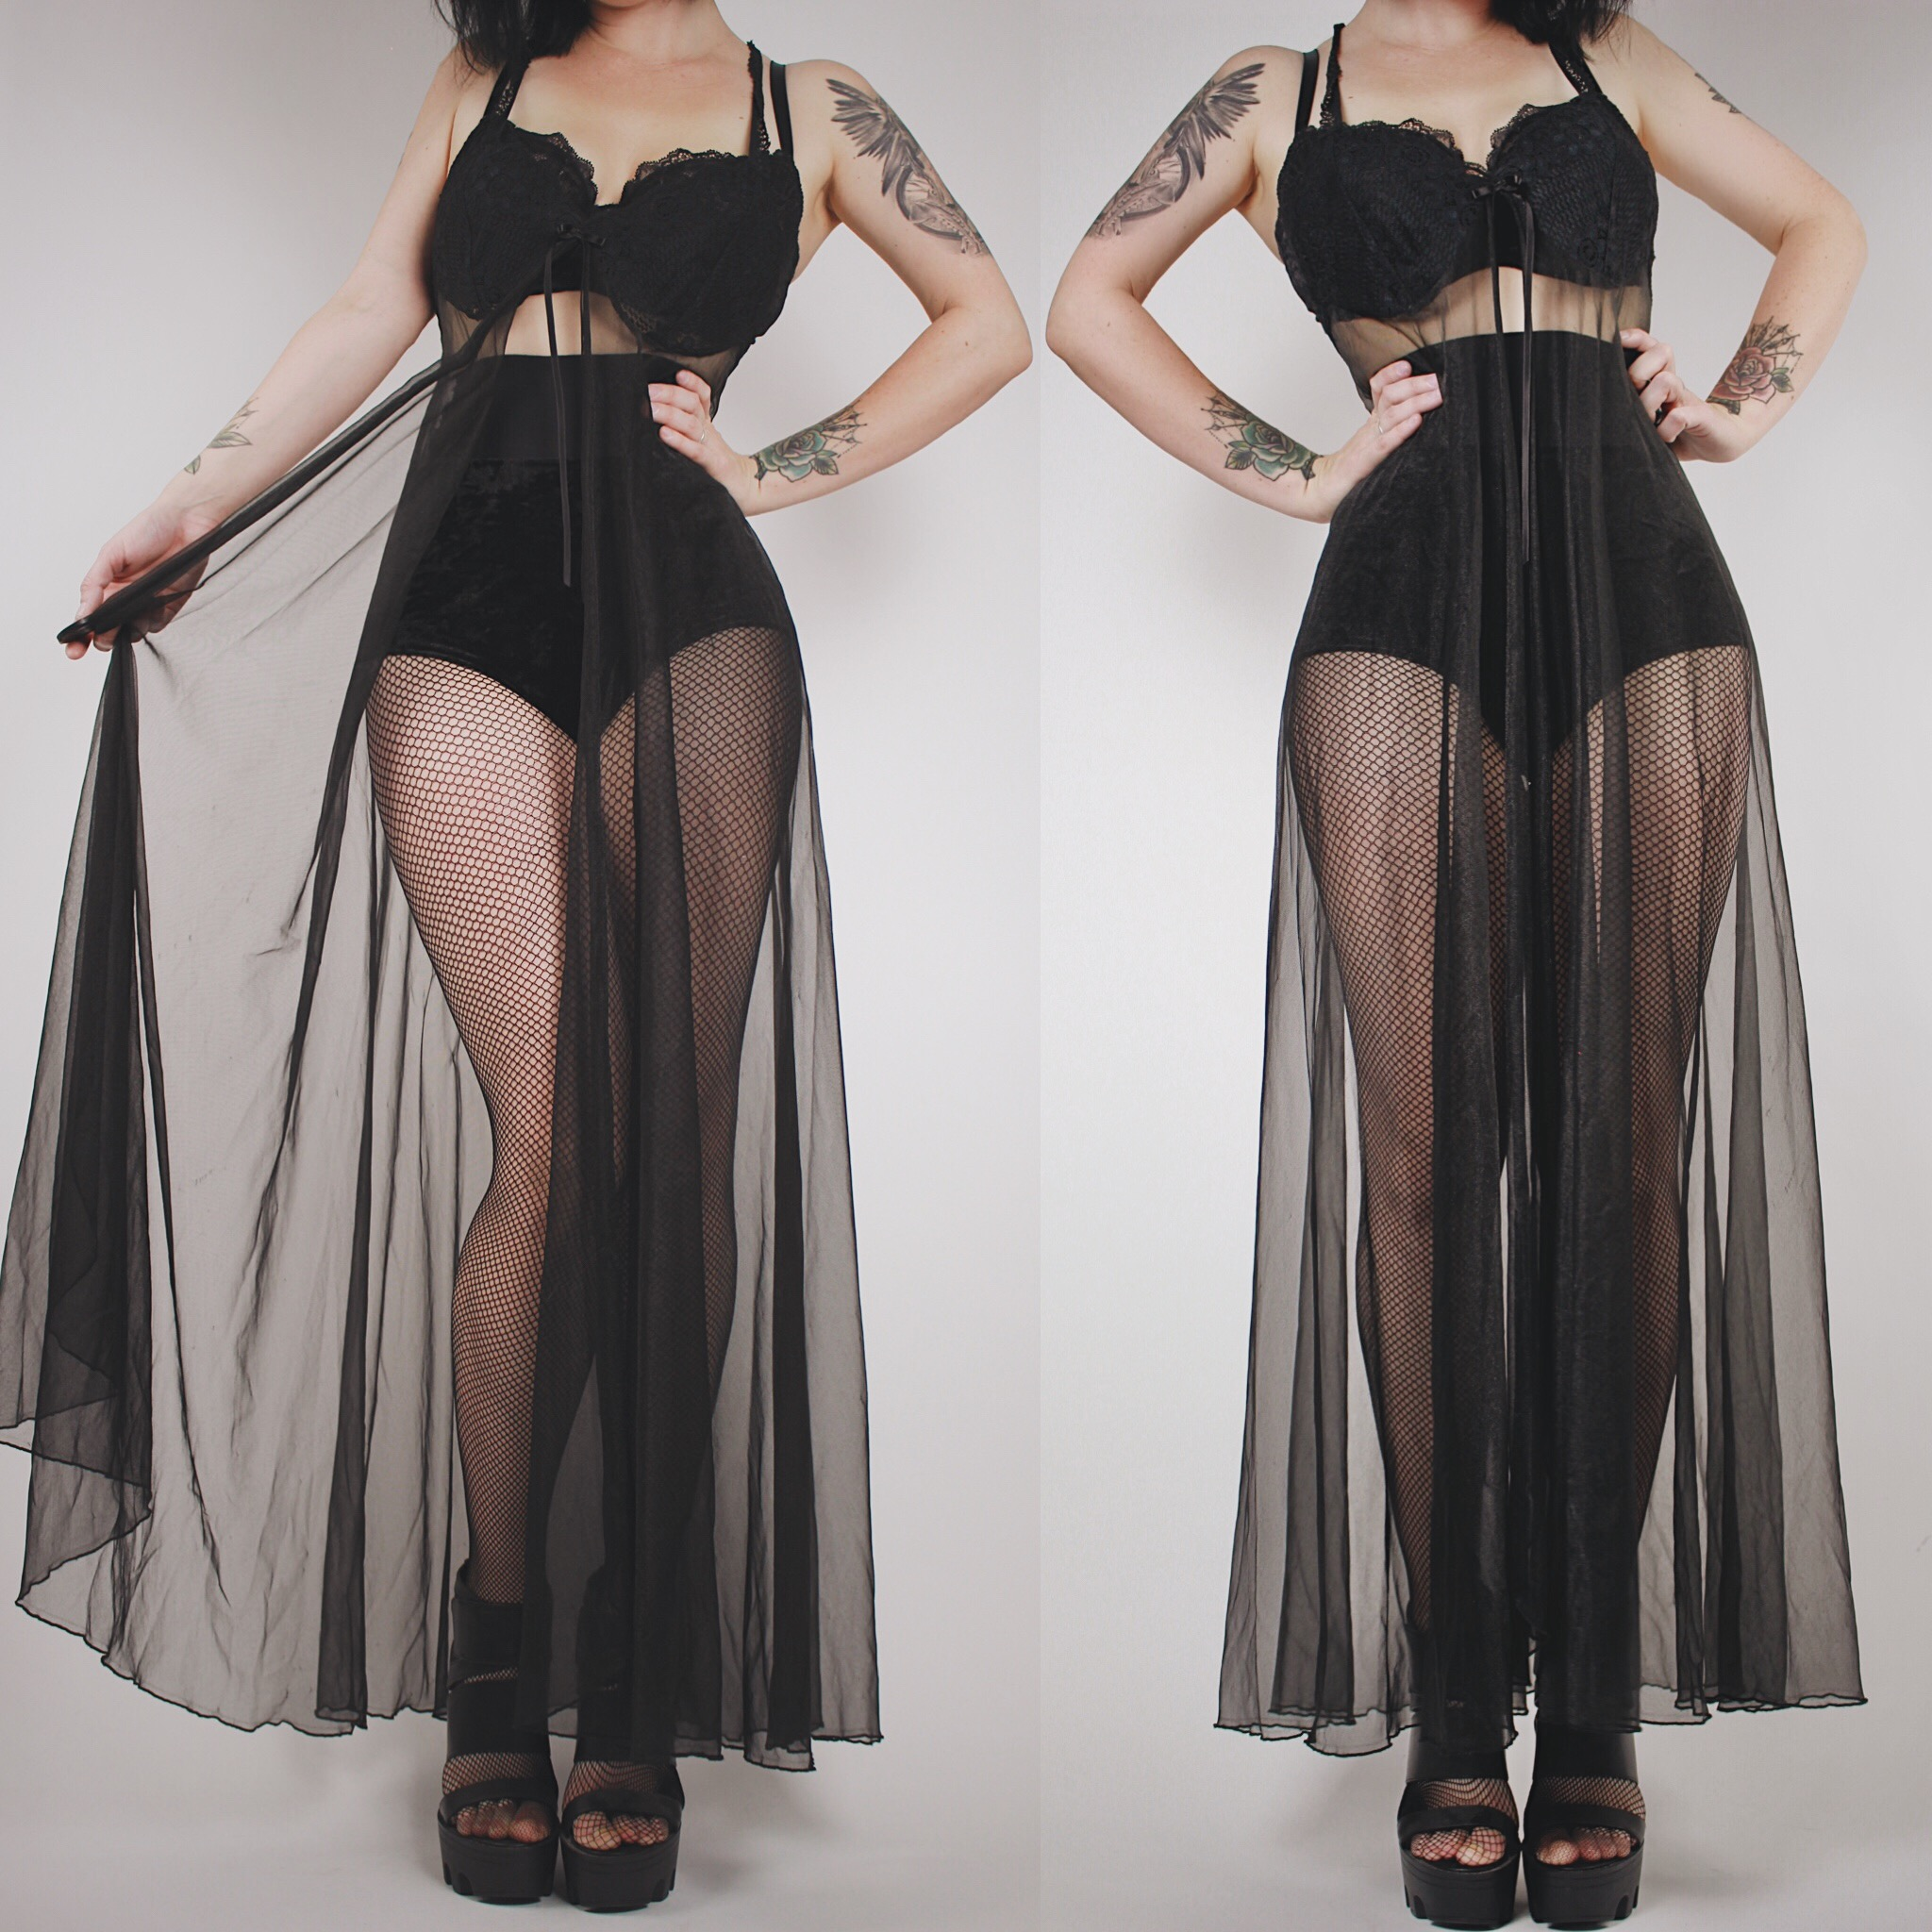 553a251f0831 CLAIMED - Vintage 80s Black Lace and Sheer Open Front Maxi Dressing Gown